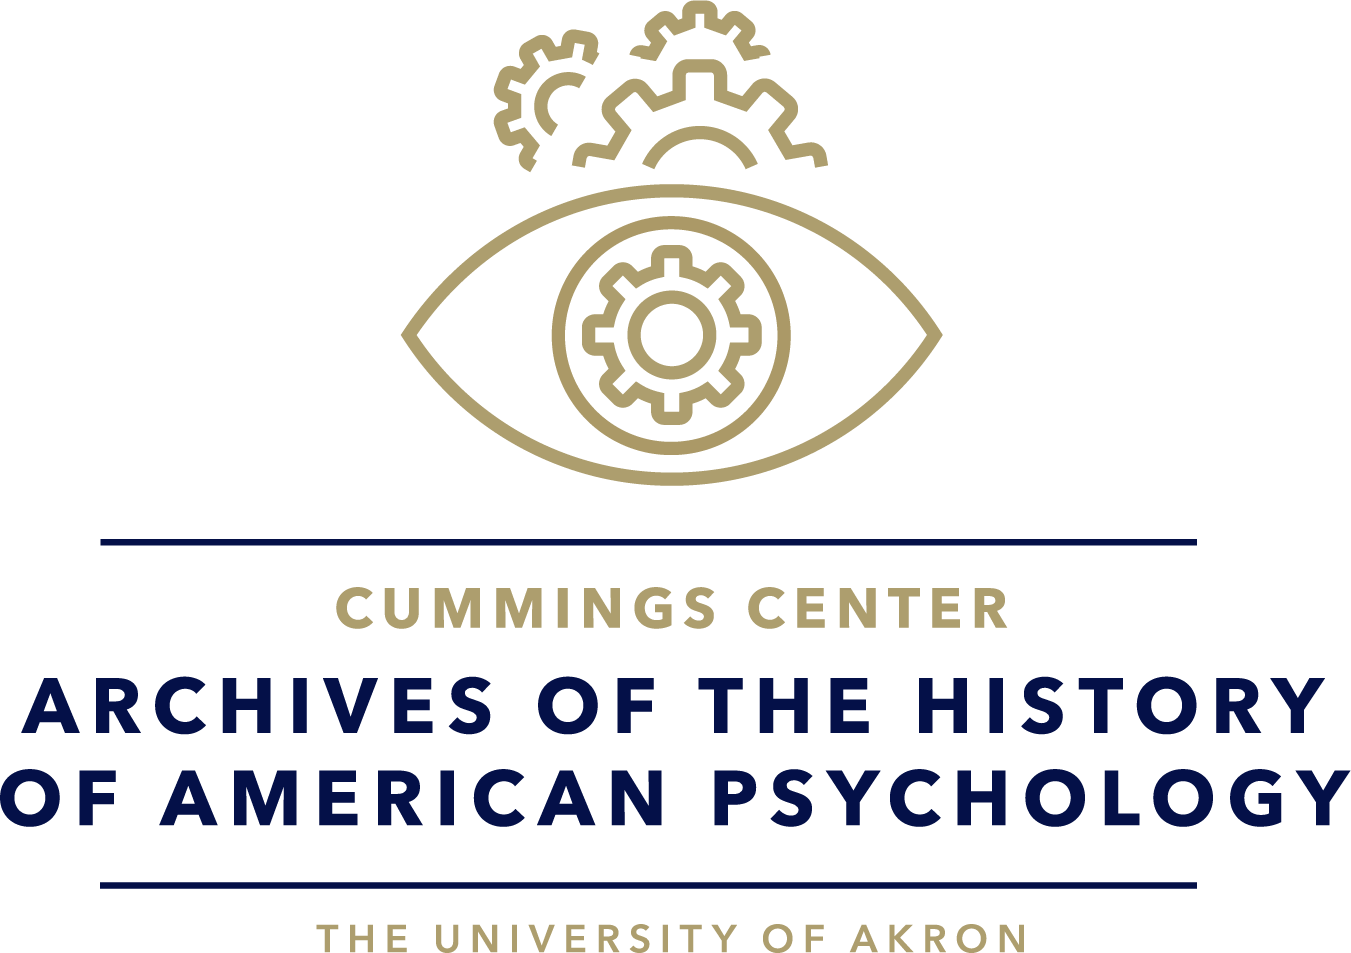 Archives of the History of American Psychology logo